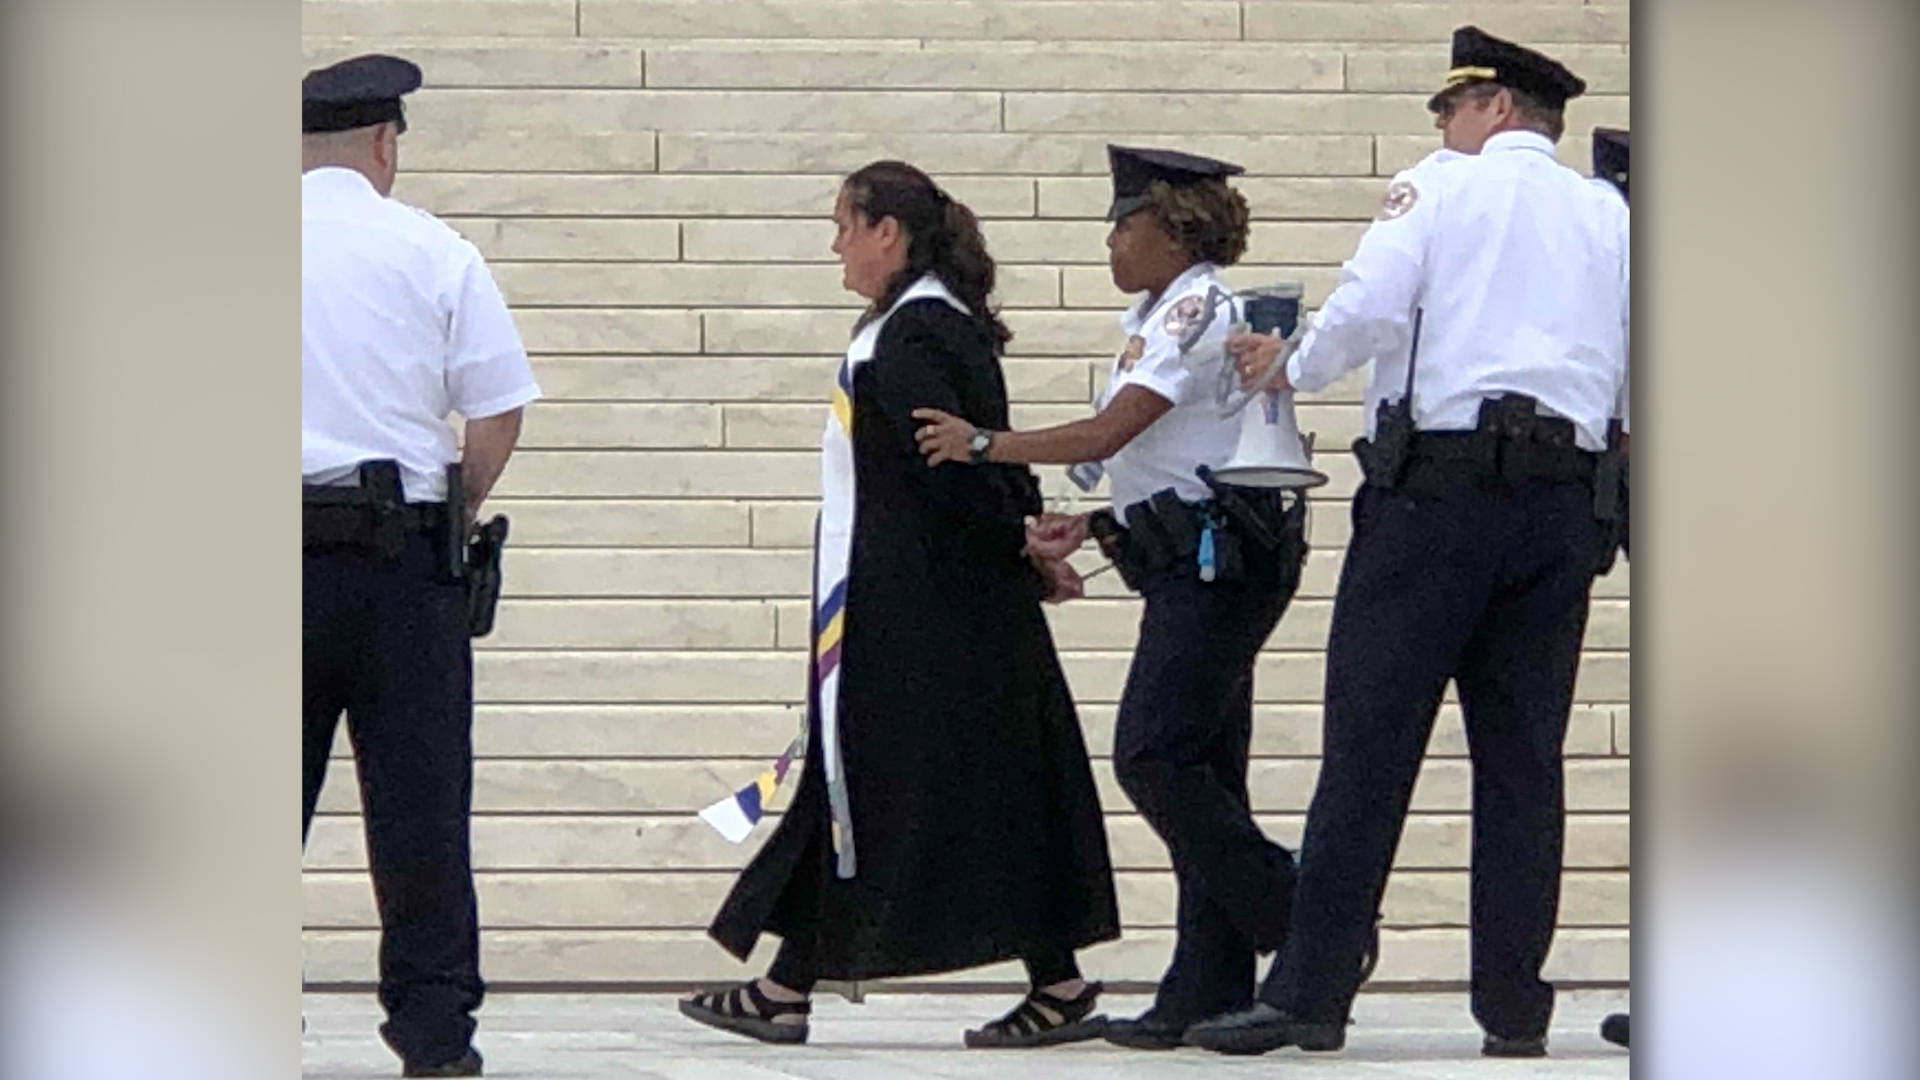 Religious Leaders Shackled, Held in Jail Overnight, After Praying in Protest Outside Supreme Court